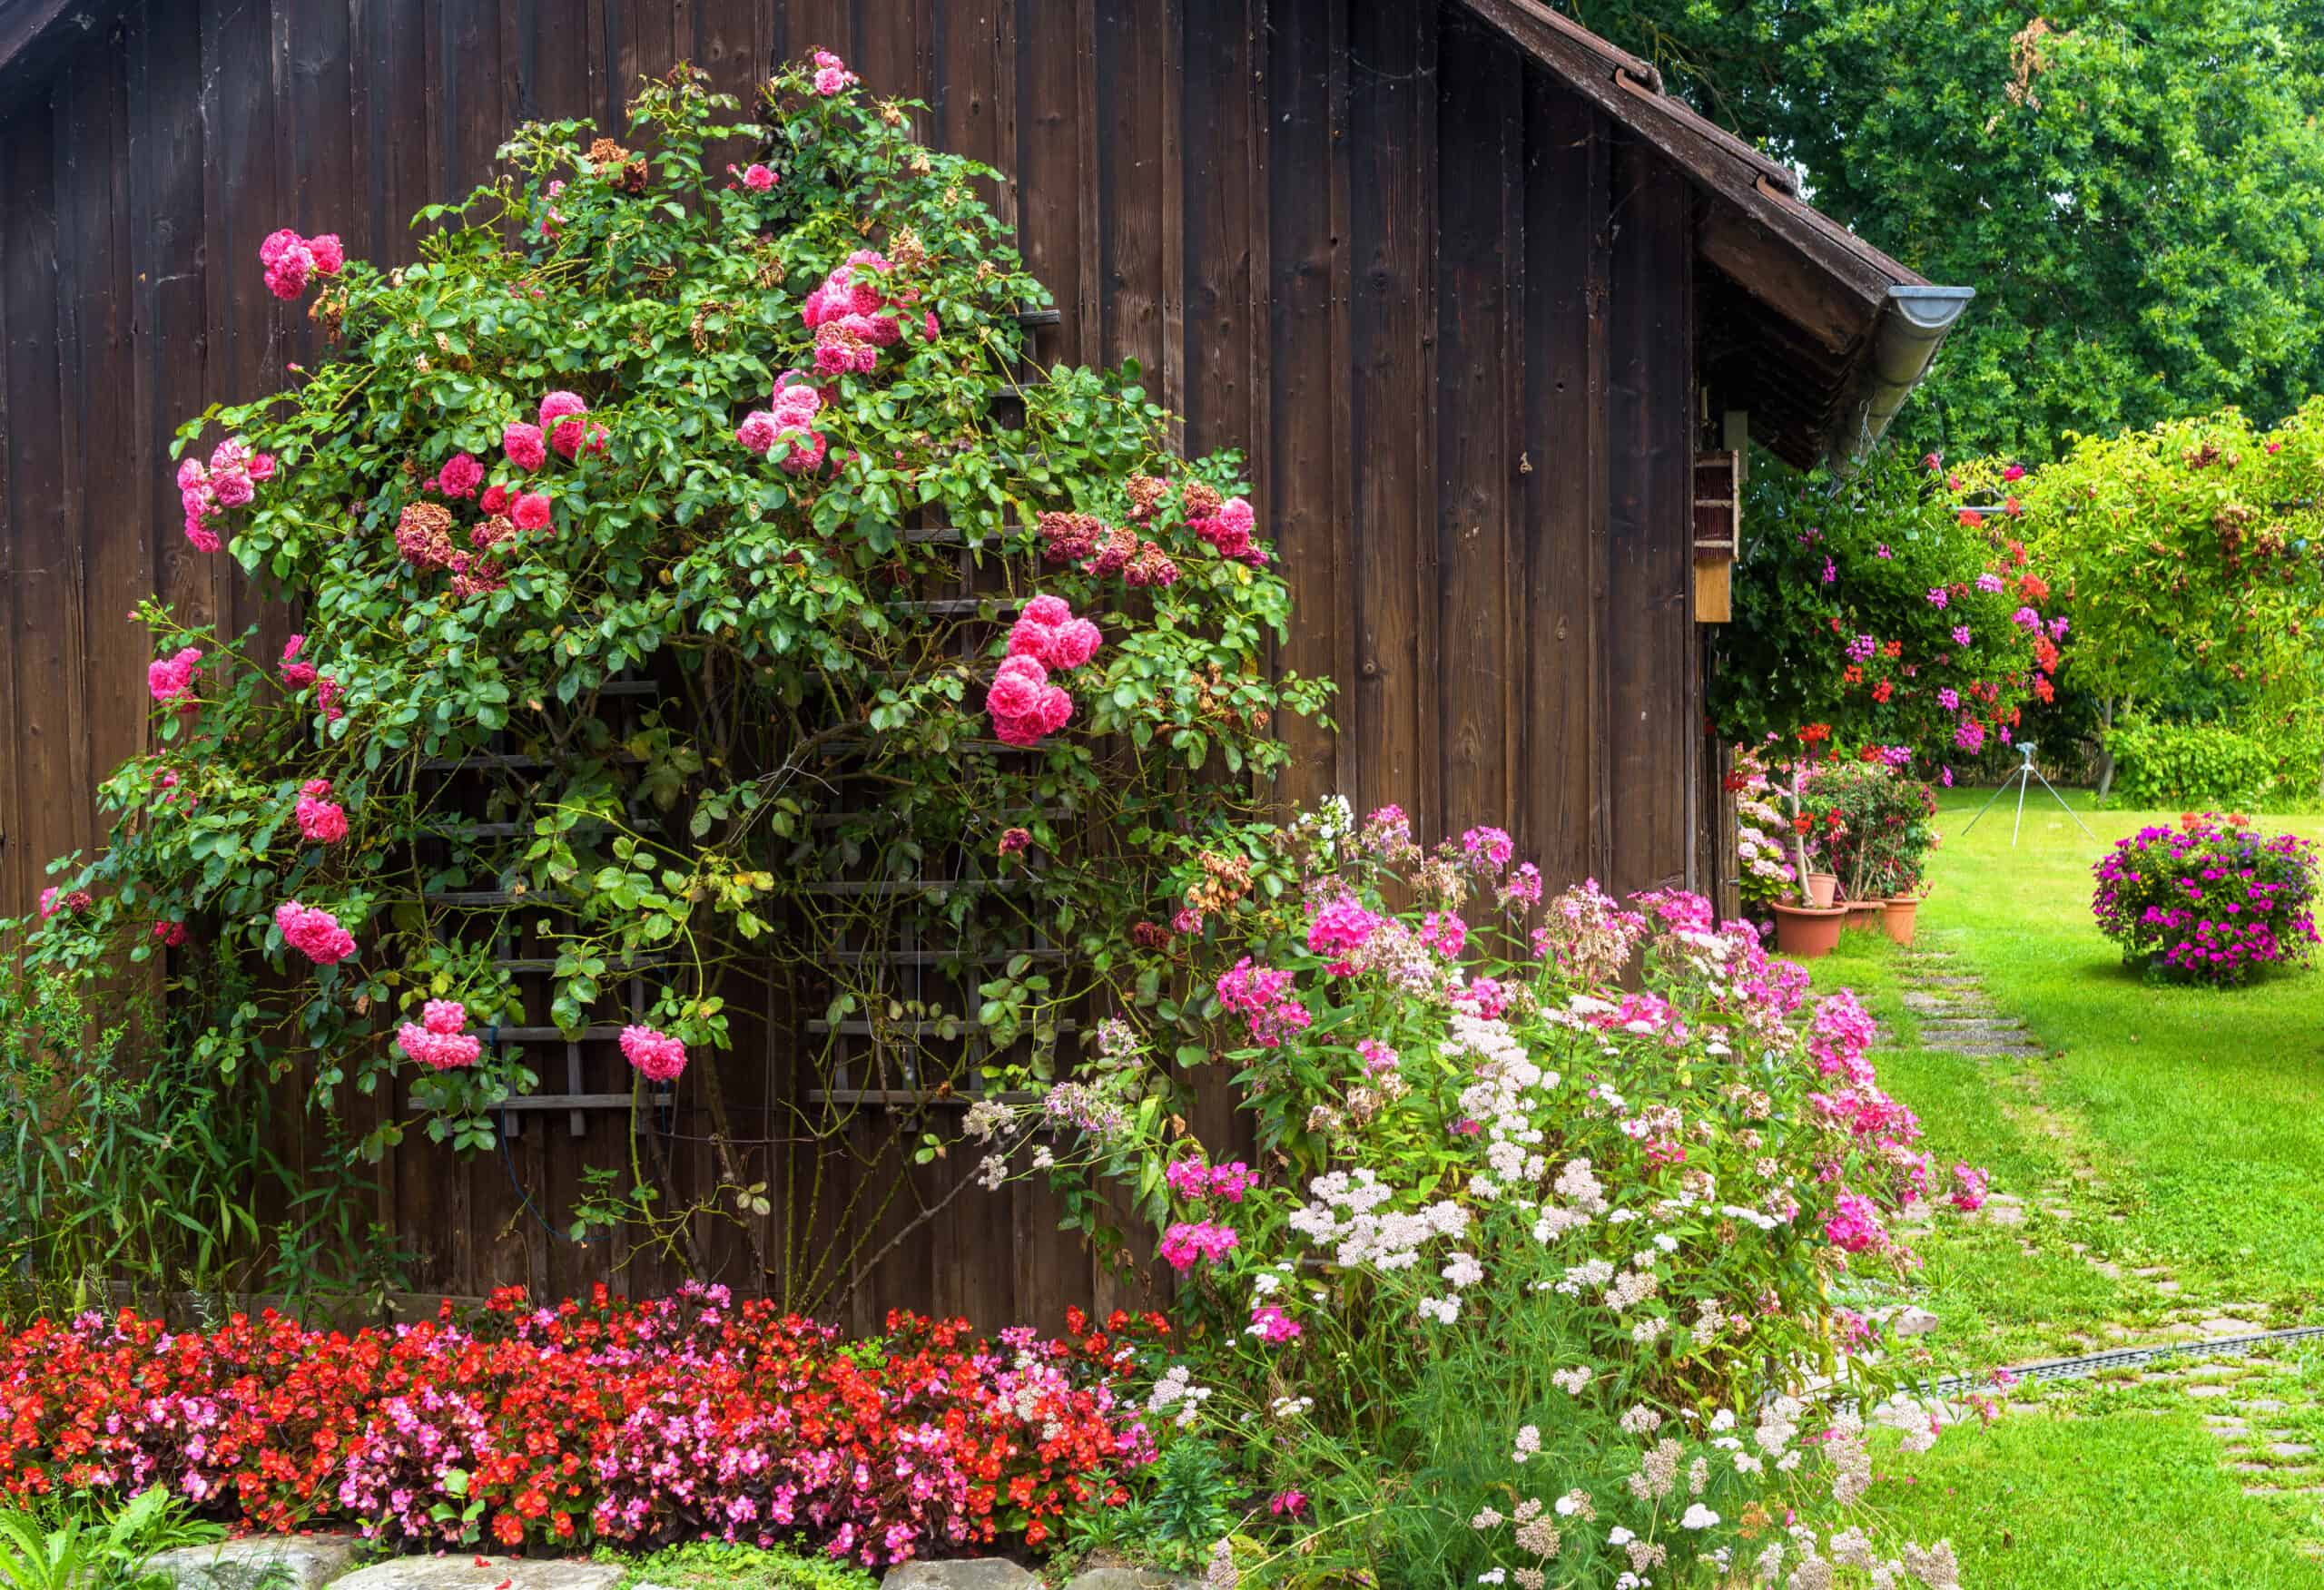 4 EASY WAYS TO FIX LANDSCAPING